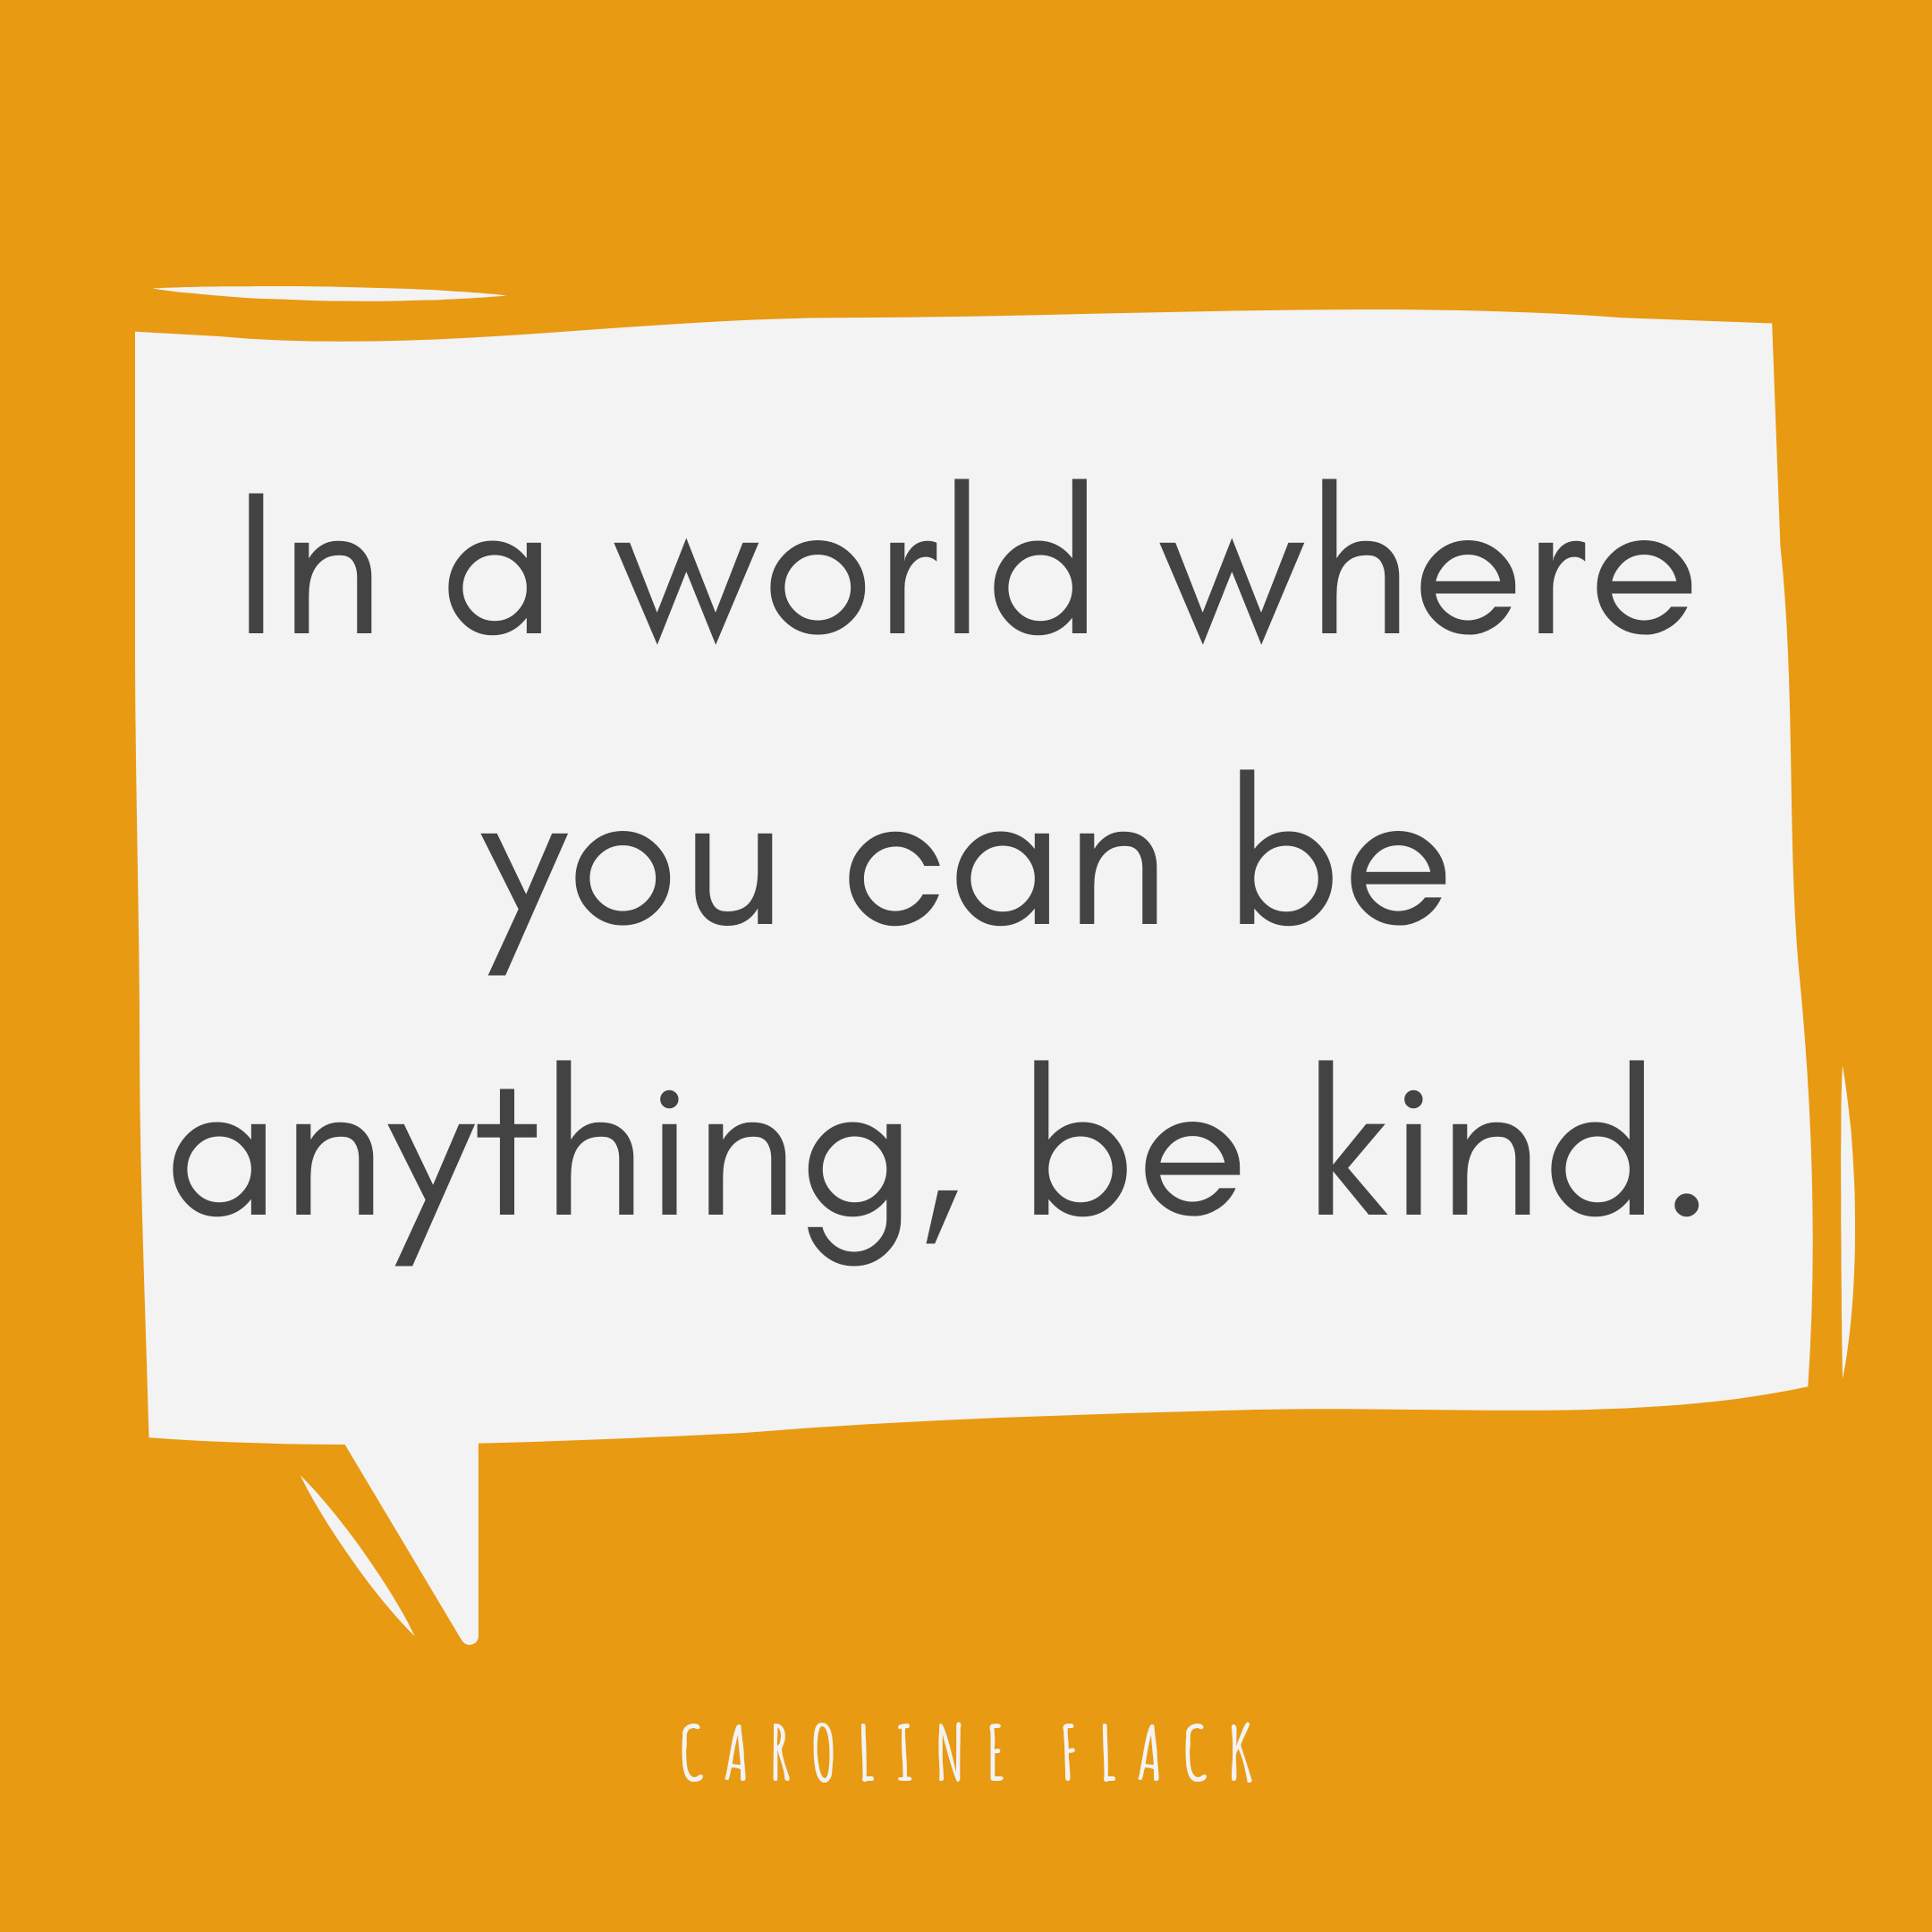 In a world where you can anything, be kind.